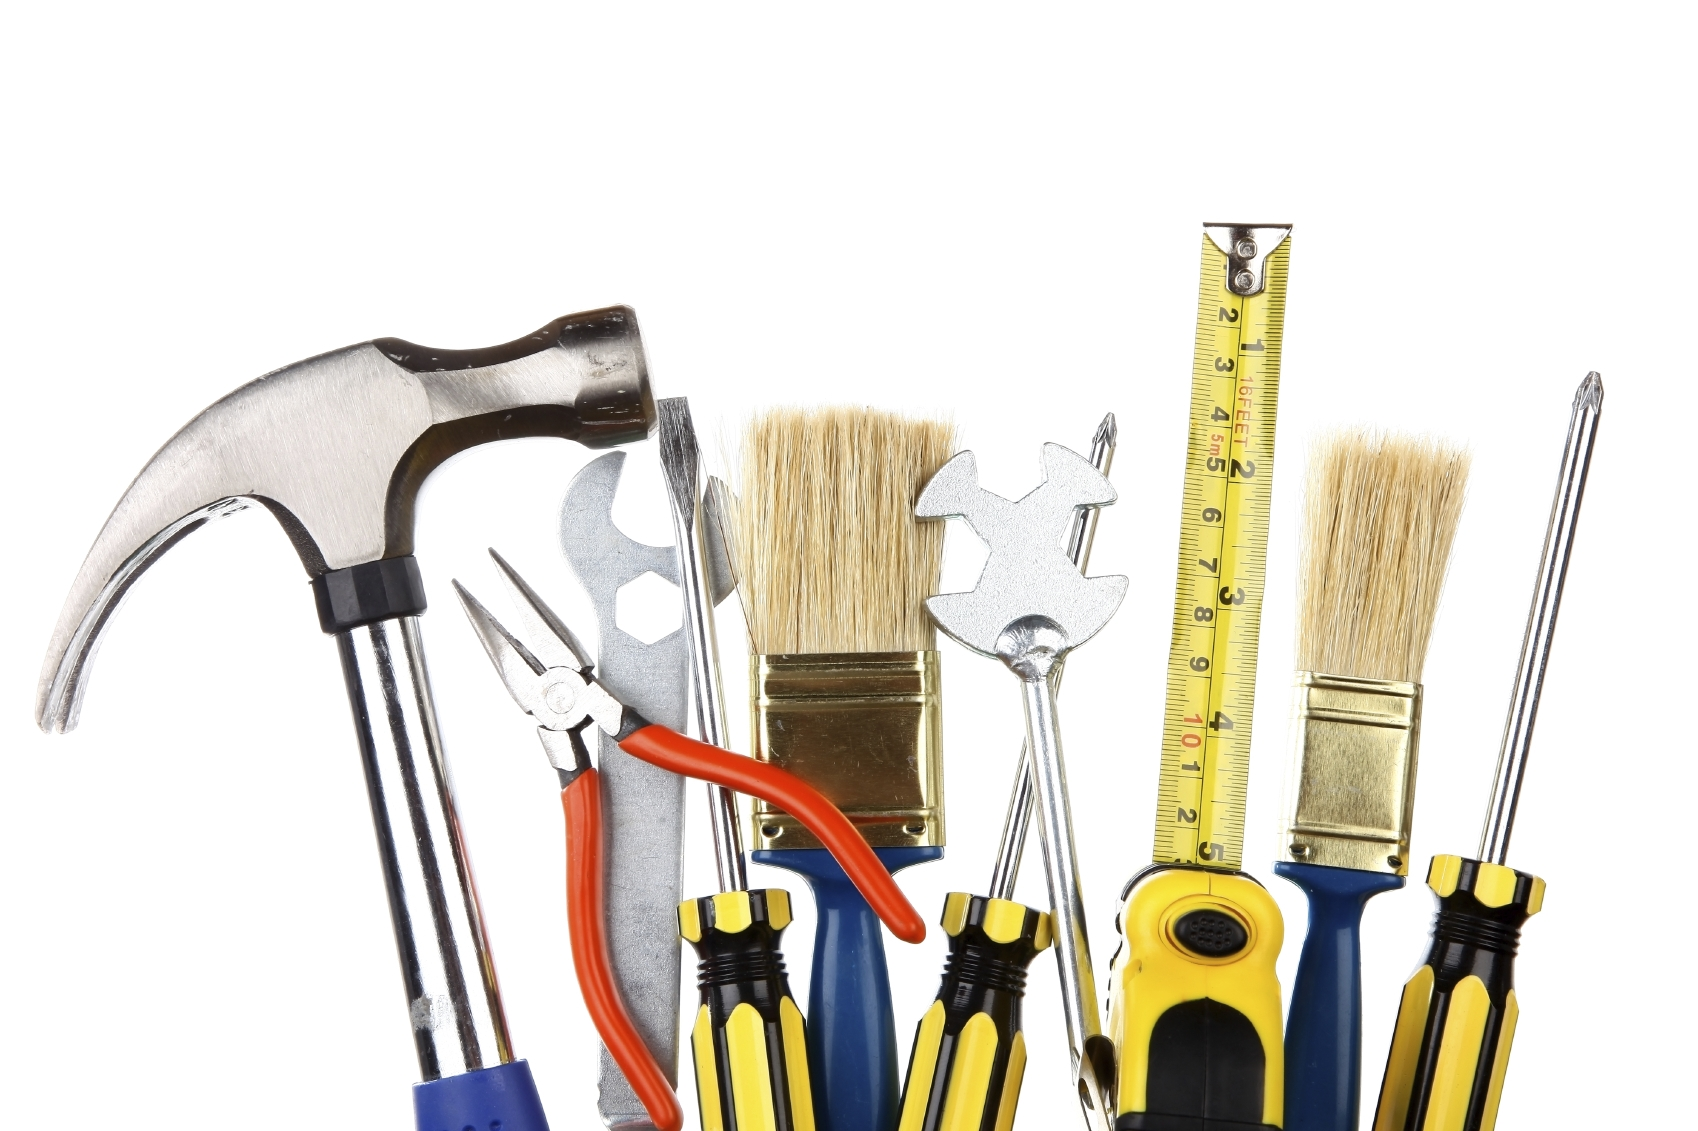 Do you need any home repairs